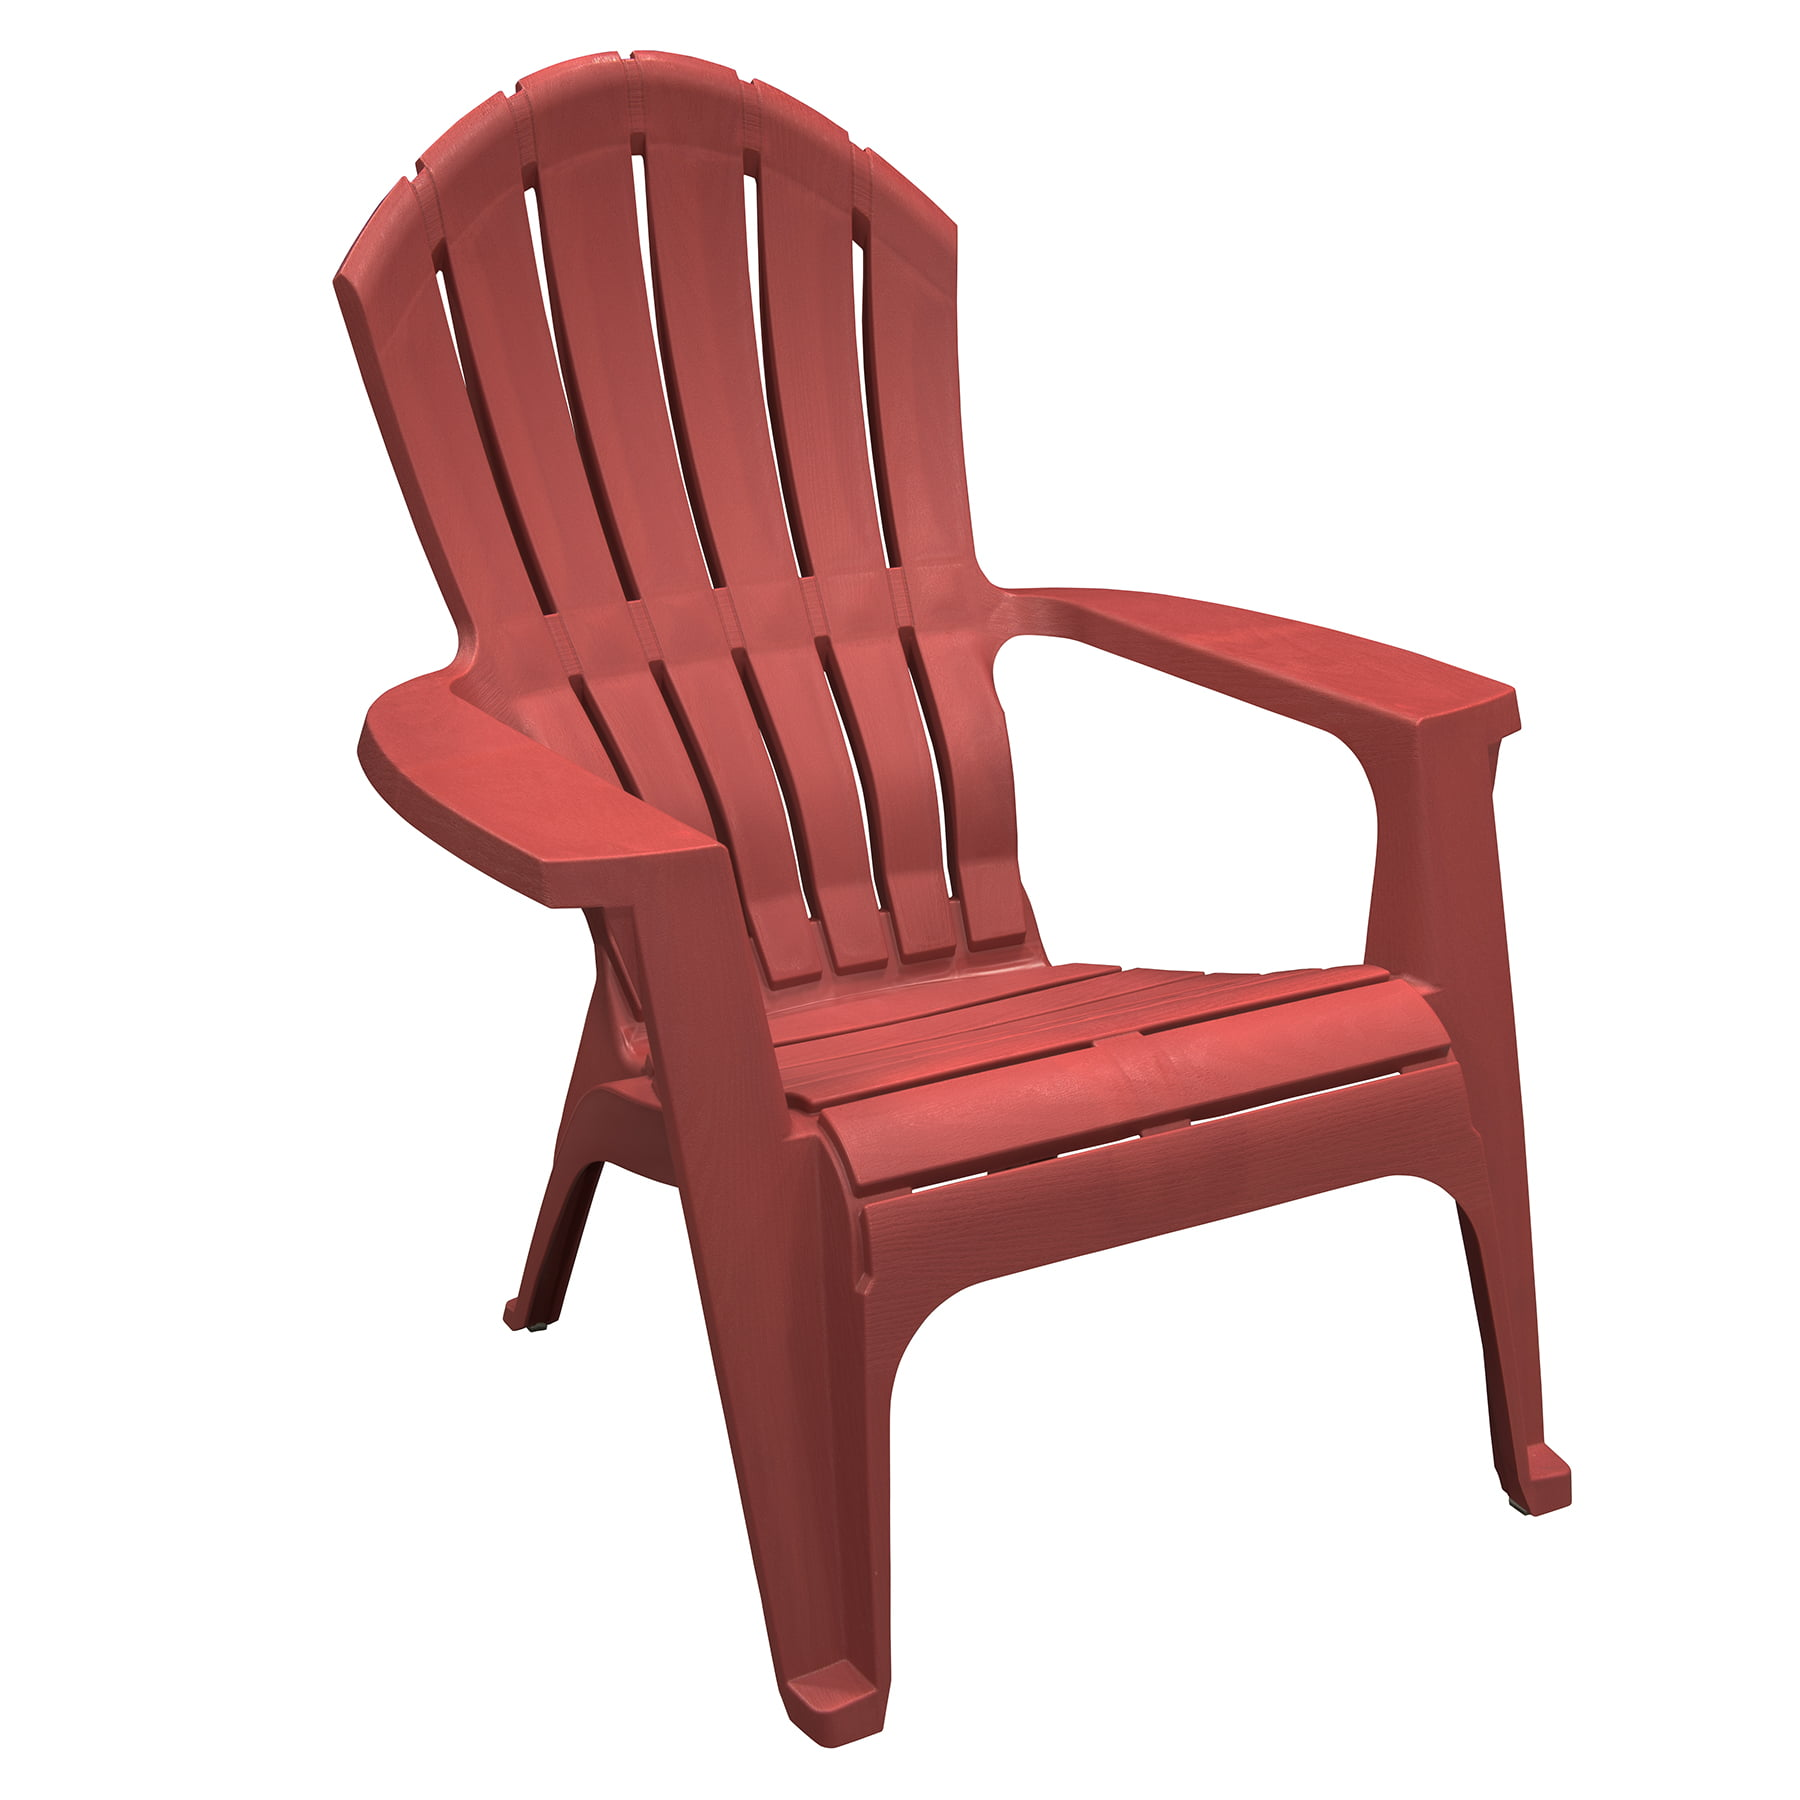 Adams Manufacturing RealComfort Adirondack Chair, Merlot by Adams Manufacturing